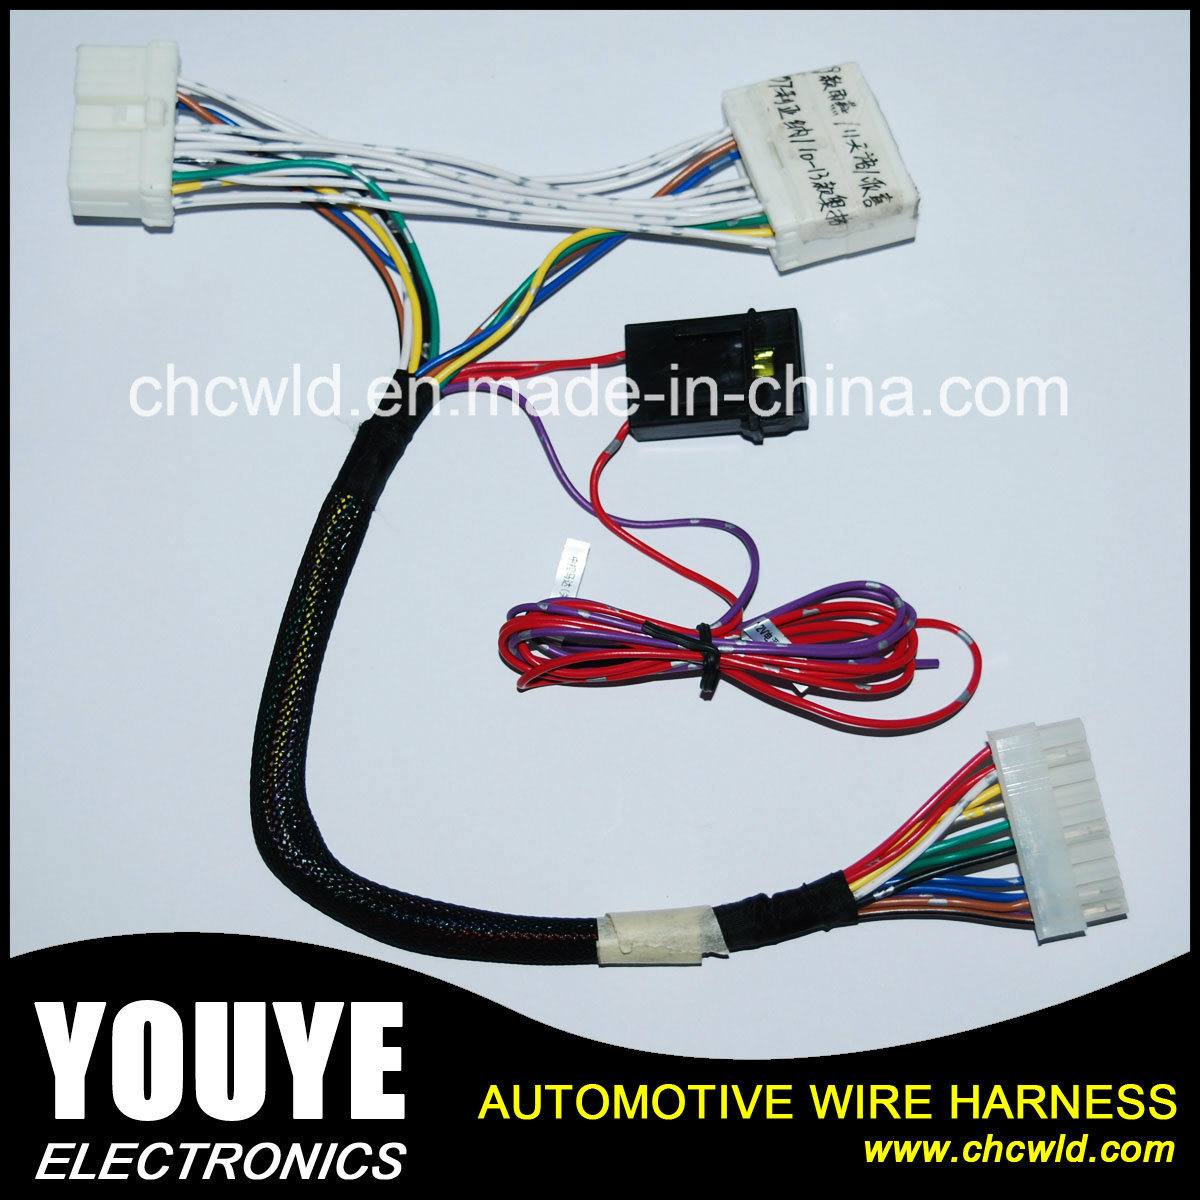 China Automotive Power Window Wire Harness For Changan Suzuki Swift Auto Electrical Wiring Connector Buy Automobile Cable